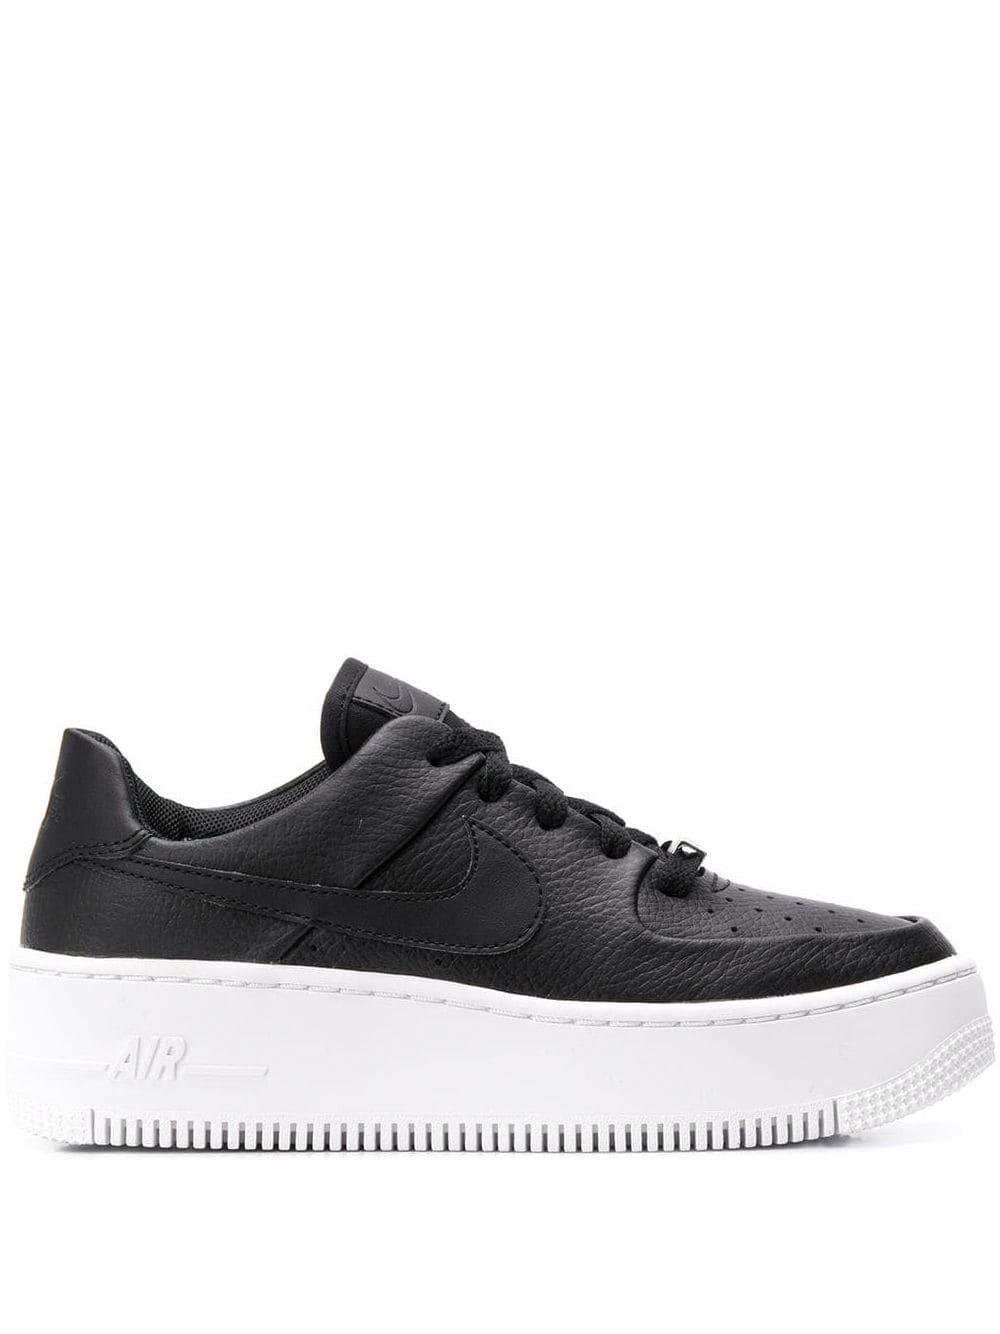 Nike Leather Air Force 1 Sage Low Basketball Shoes in Black/Black ...